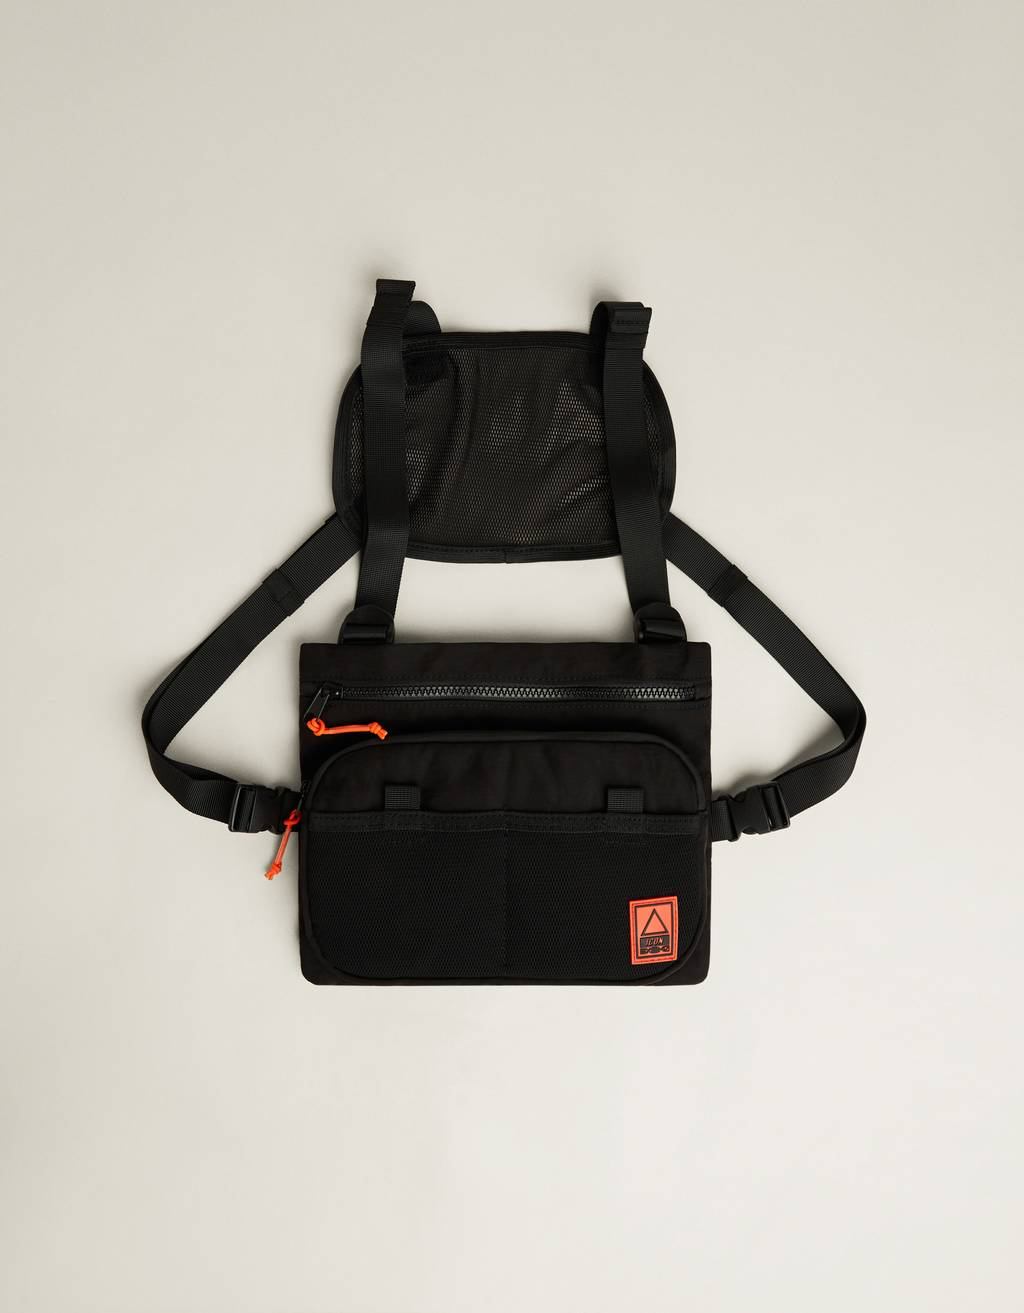 Riñonera tipo chest bag